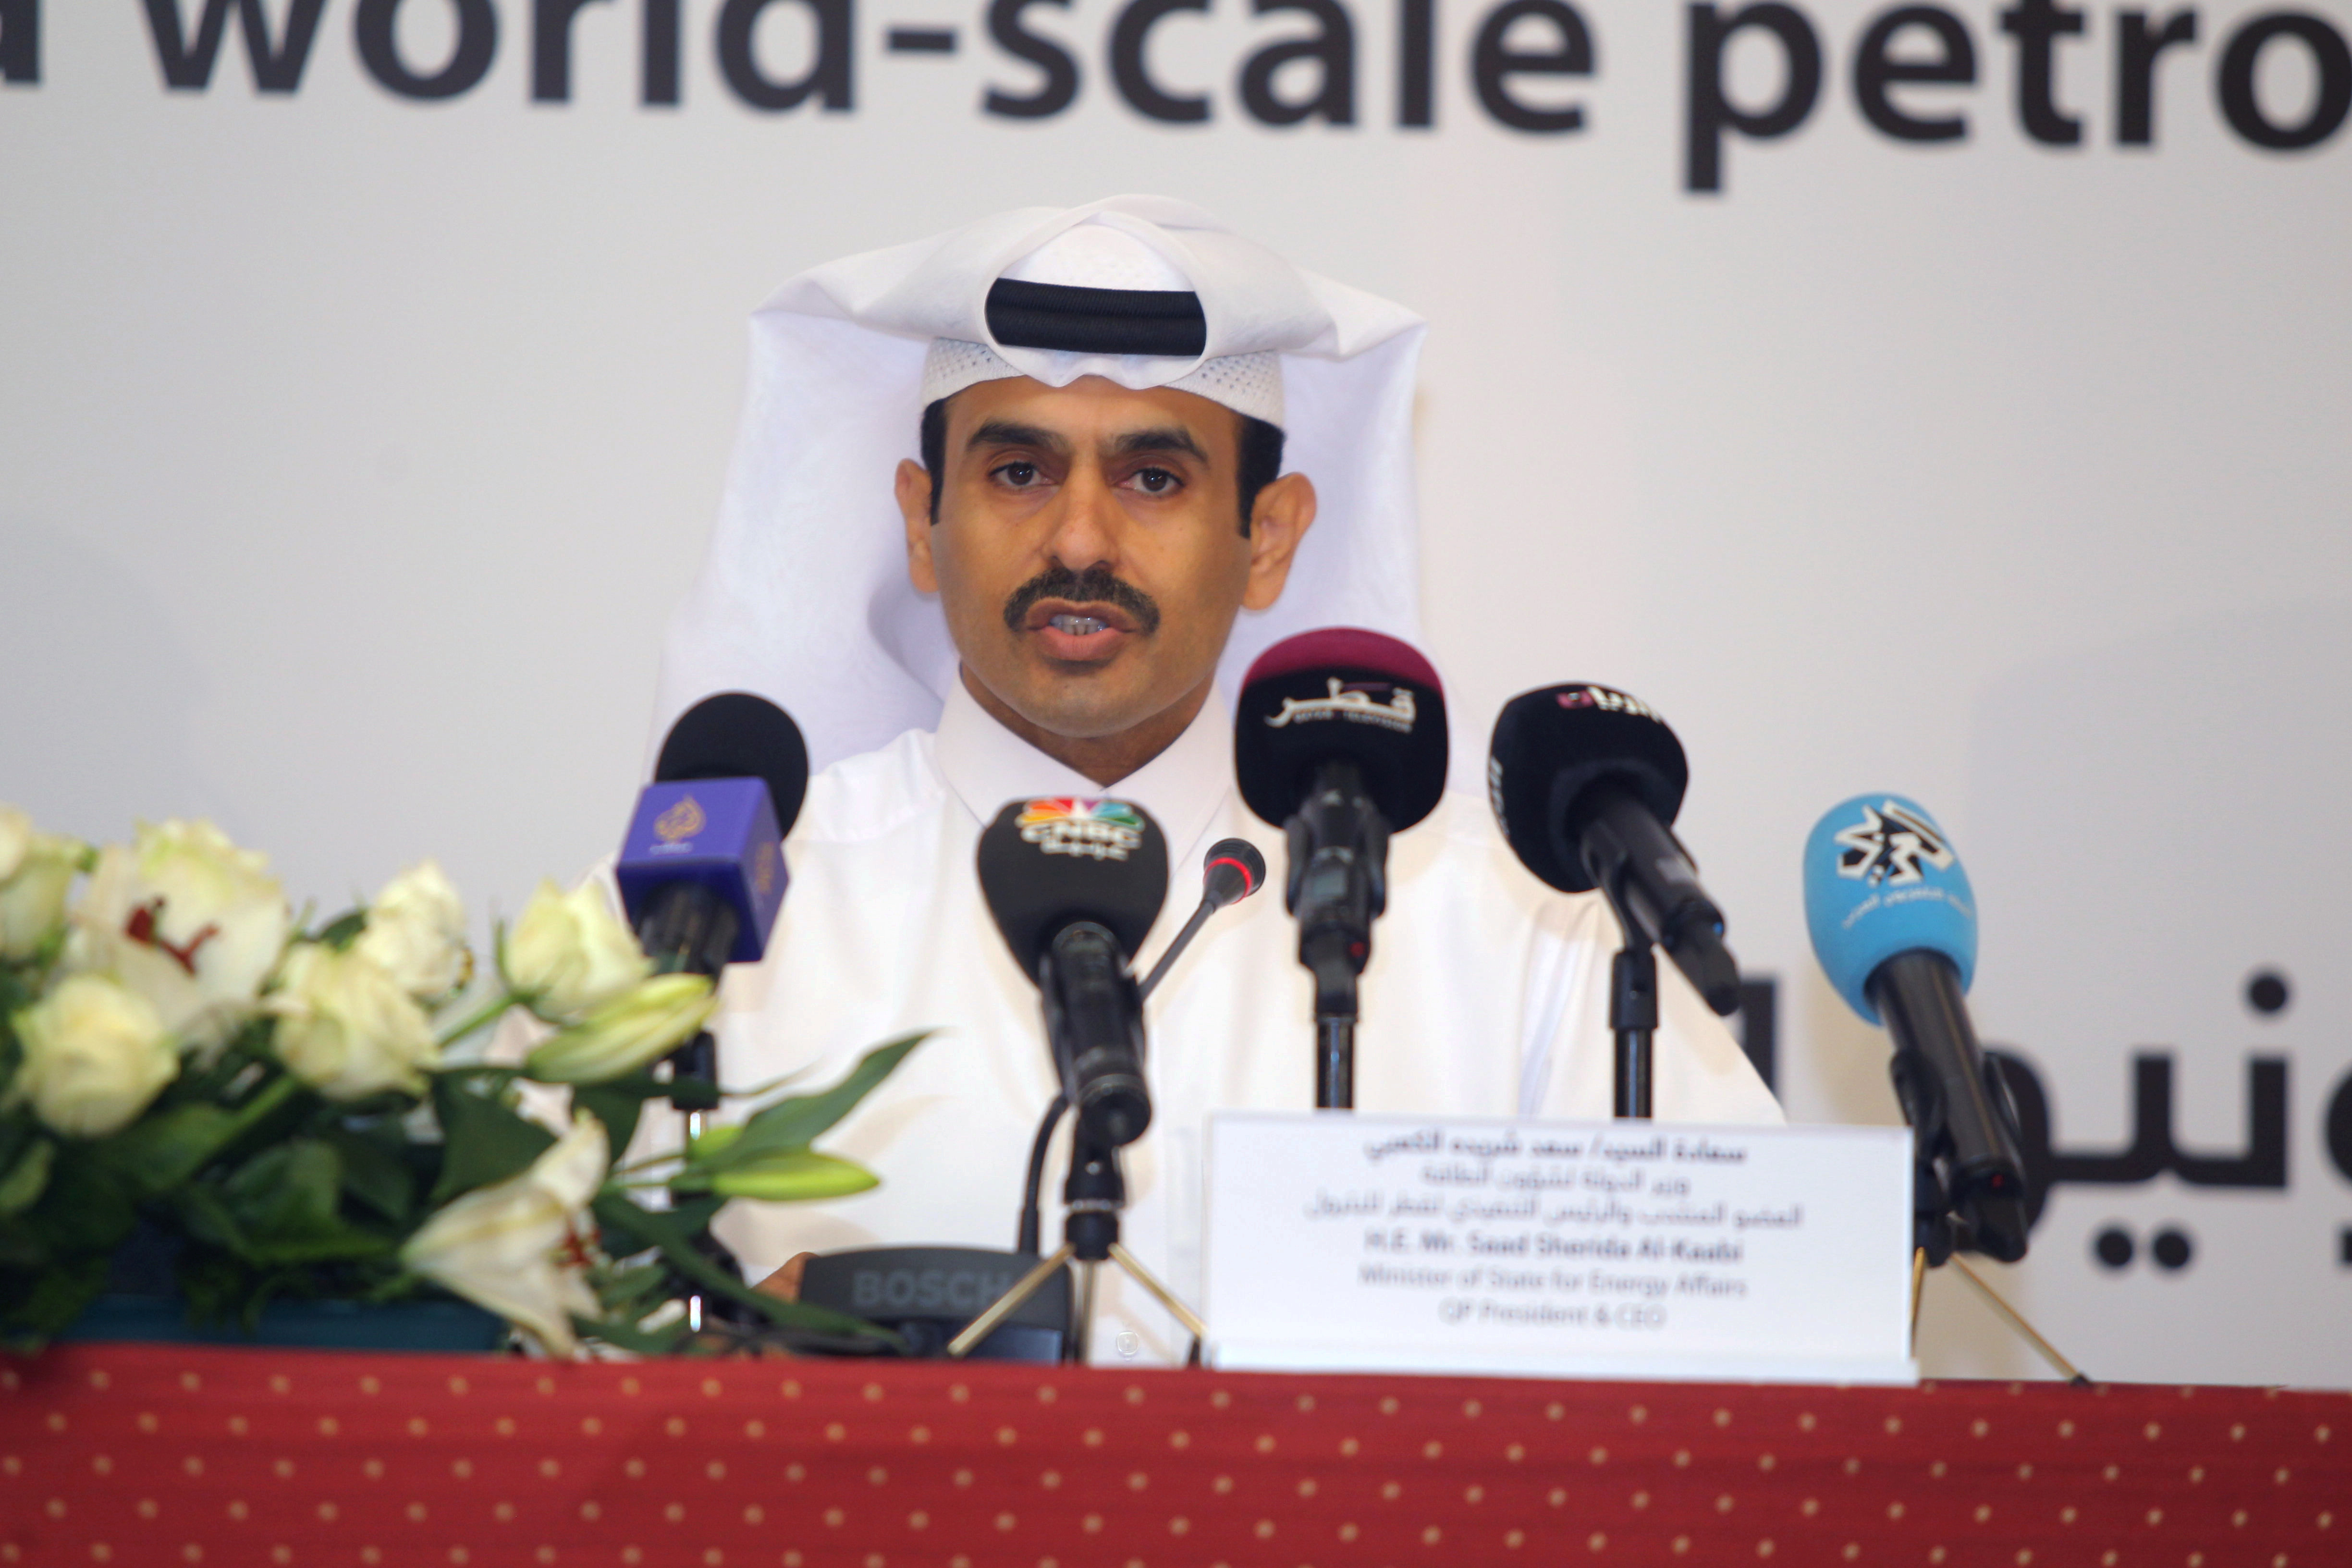 Qatar Petroleum CEO and Minister of State for Energy Saad al-Kaabi speaks during a news conference in Doha, Qatar June 24, 2019. REUTERS/Naseem Zeitoun/File Photo